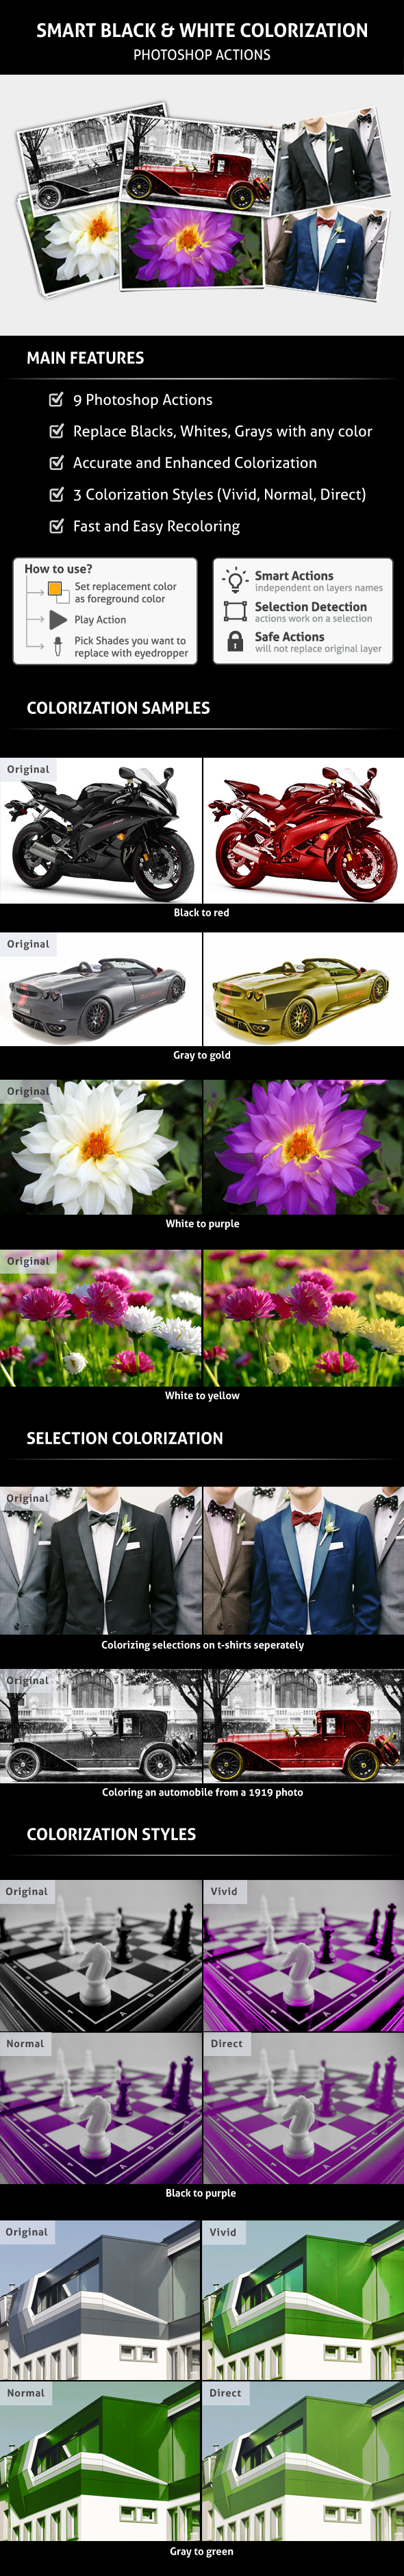 Smart Black & White Colorization - Utilities Actions